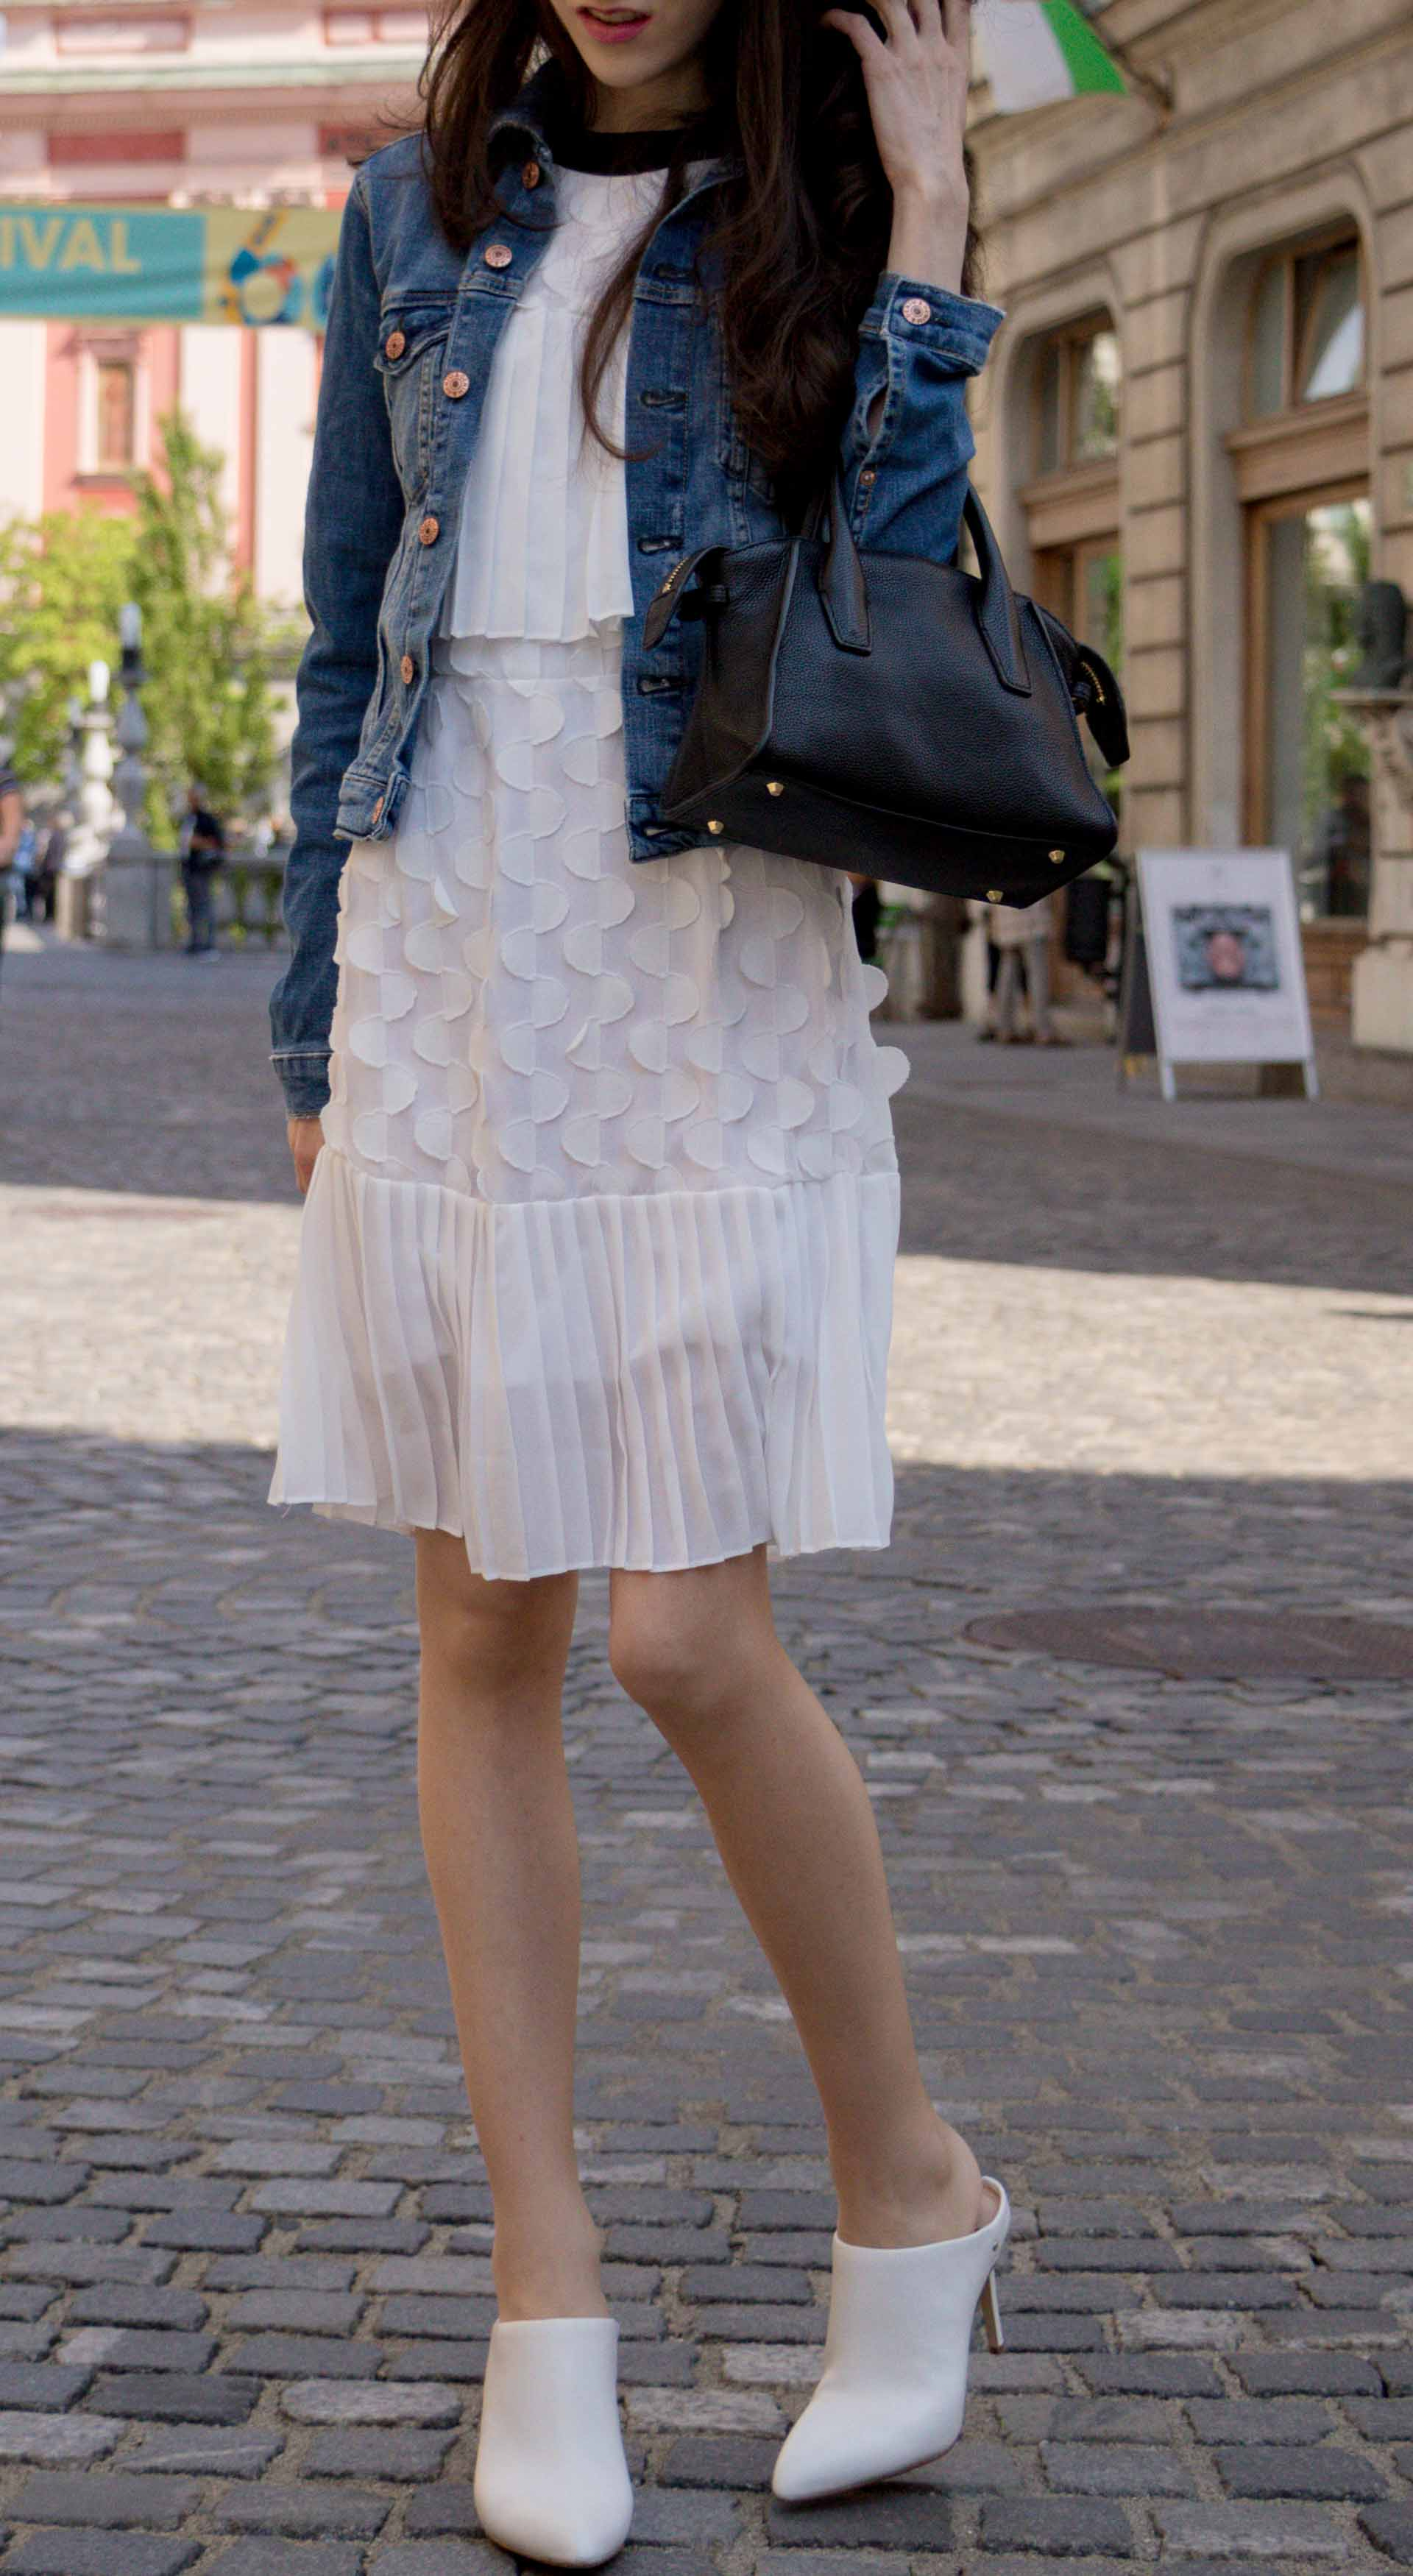 Veronika Lipar Fashion Editor of Brunette from Wall Street dressed in H&M blue denim jacket, Storets white pleated short dress, white mules and Adam Selman x Le Specs white cat eye Lolita sunglasses, black small bag dancing on the street